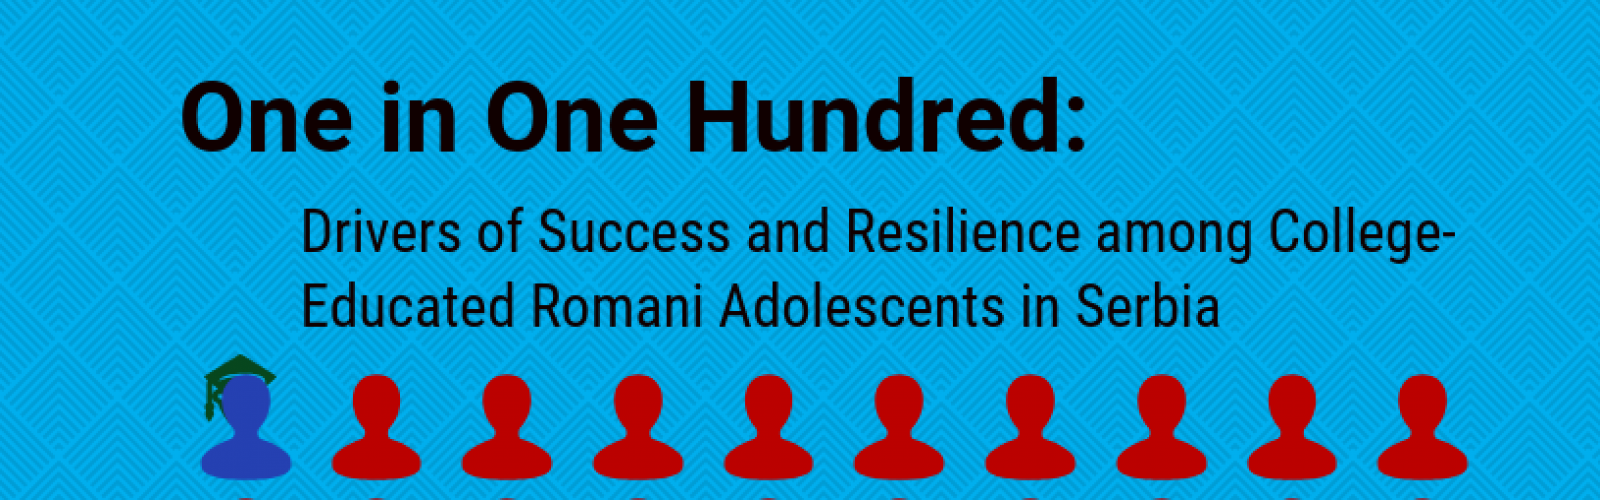 Harvard FXB Releases New Report on Roma Access to Education